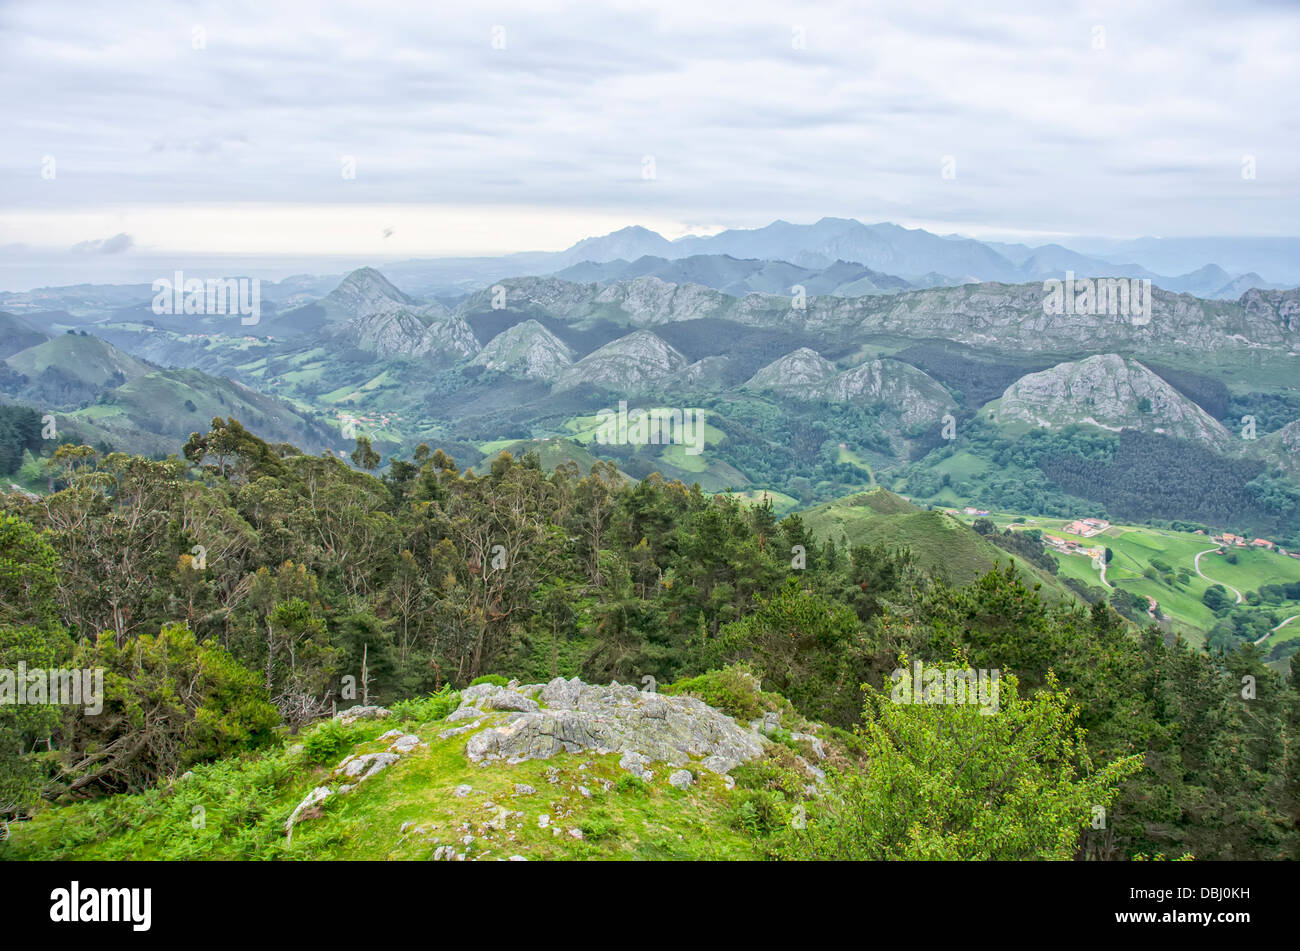 Fito Stock Photos Images Alamy Green Ecer Picos De Europa Seen From Viewpoint Of Asturias Spain